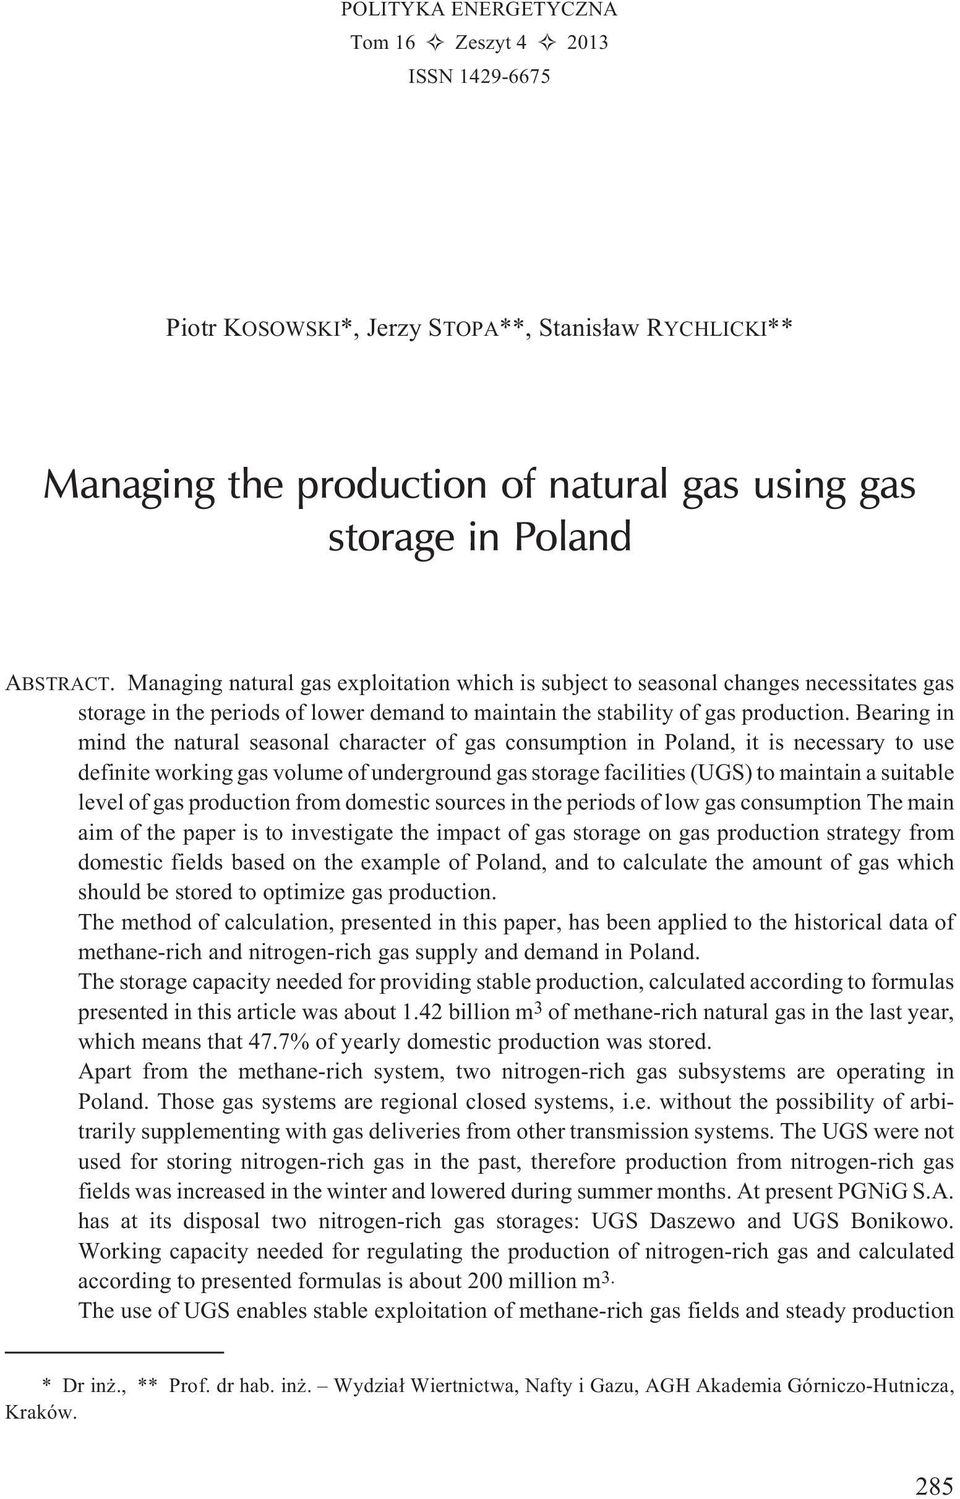 Bearing in mind the natural seasonal character of gas consumption in Poland, it is necessary to use definite working gas volume of underground gas storage facilities (UGS) to maintain a suitable